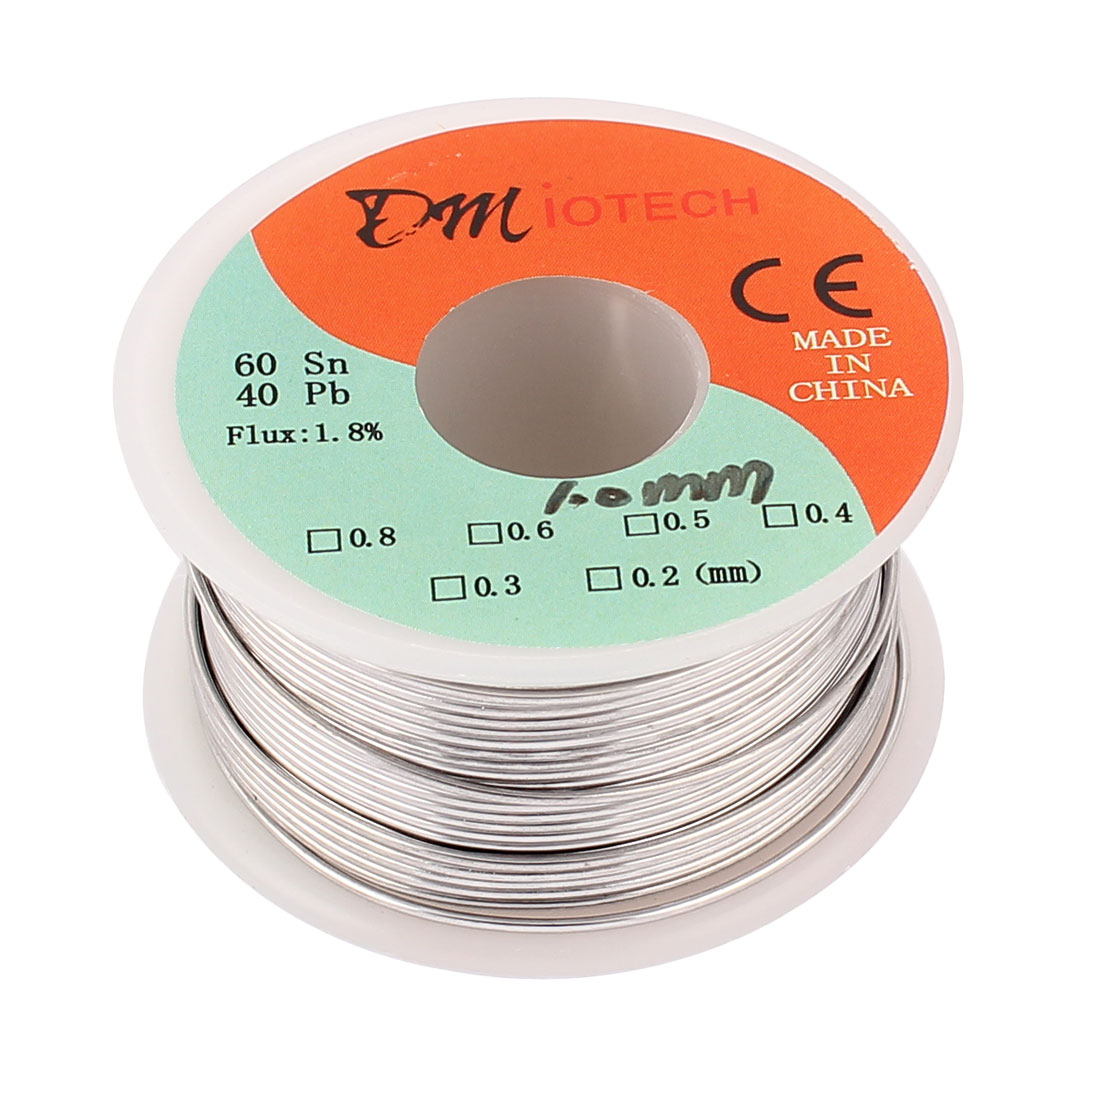 DMiotech 1.0mm 60/40 Rosin Core Flux 1.8% Tin Lead Roll Soldering Solder Wire Reel